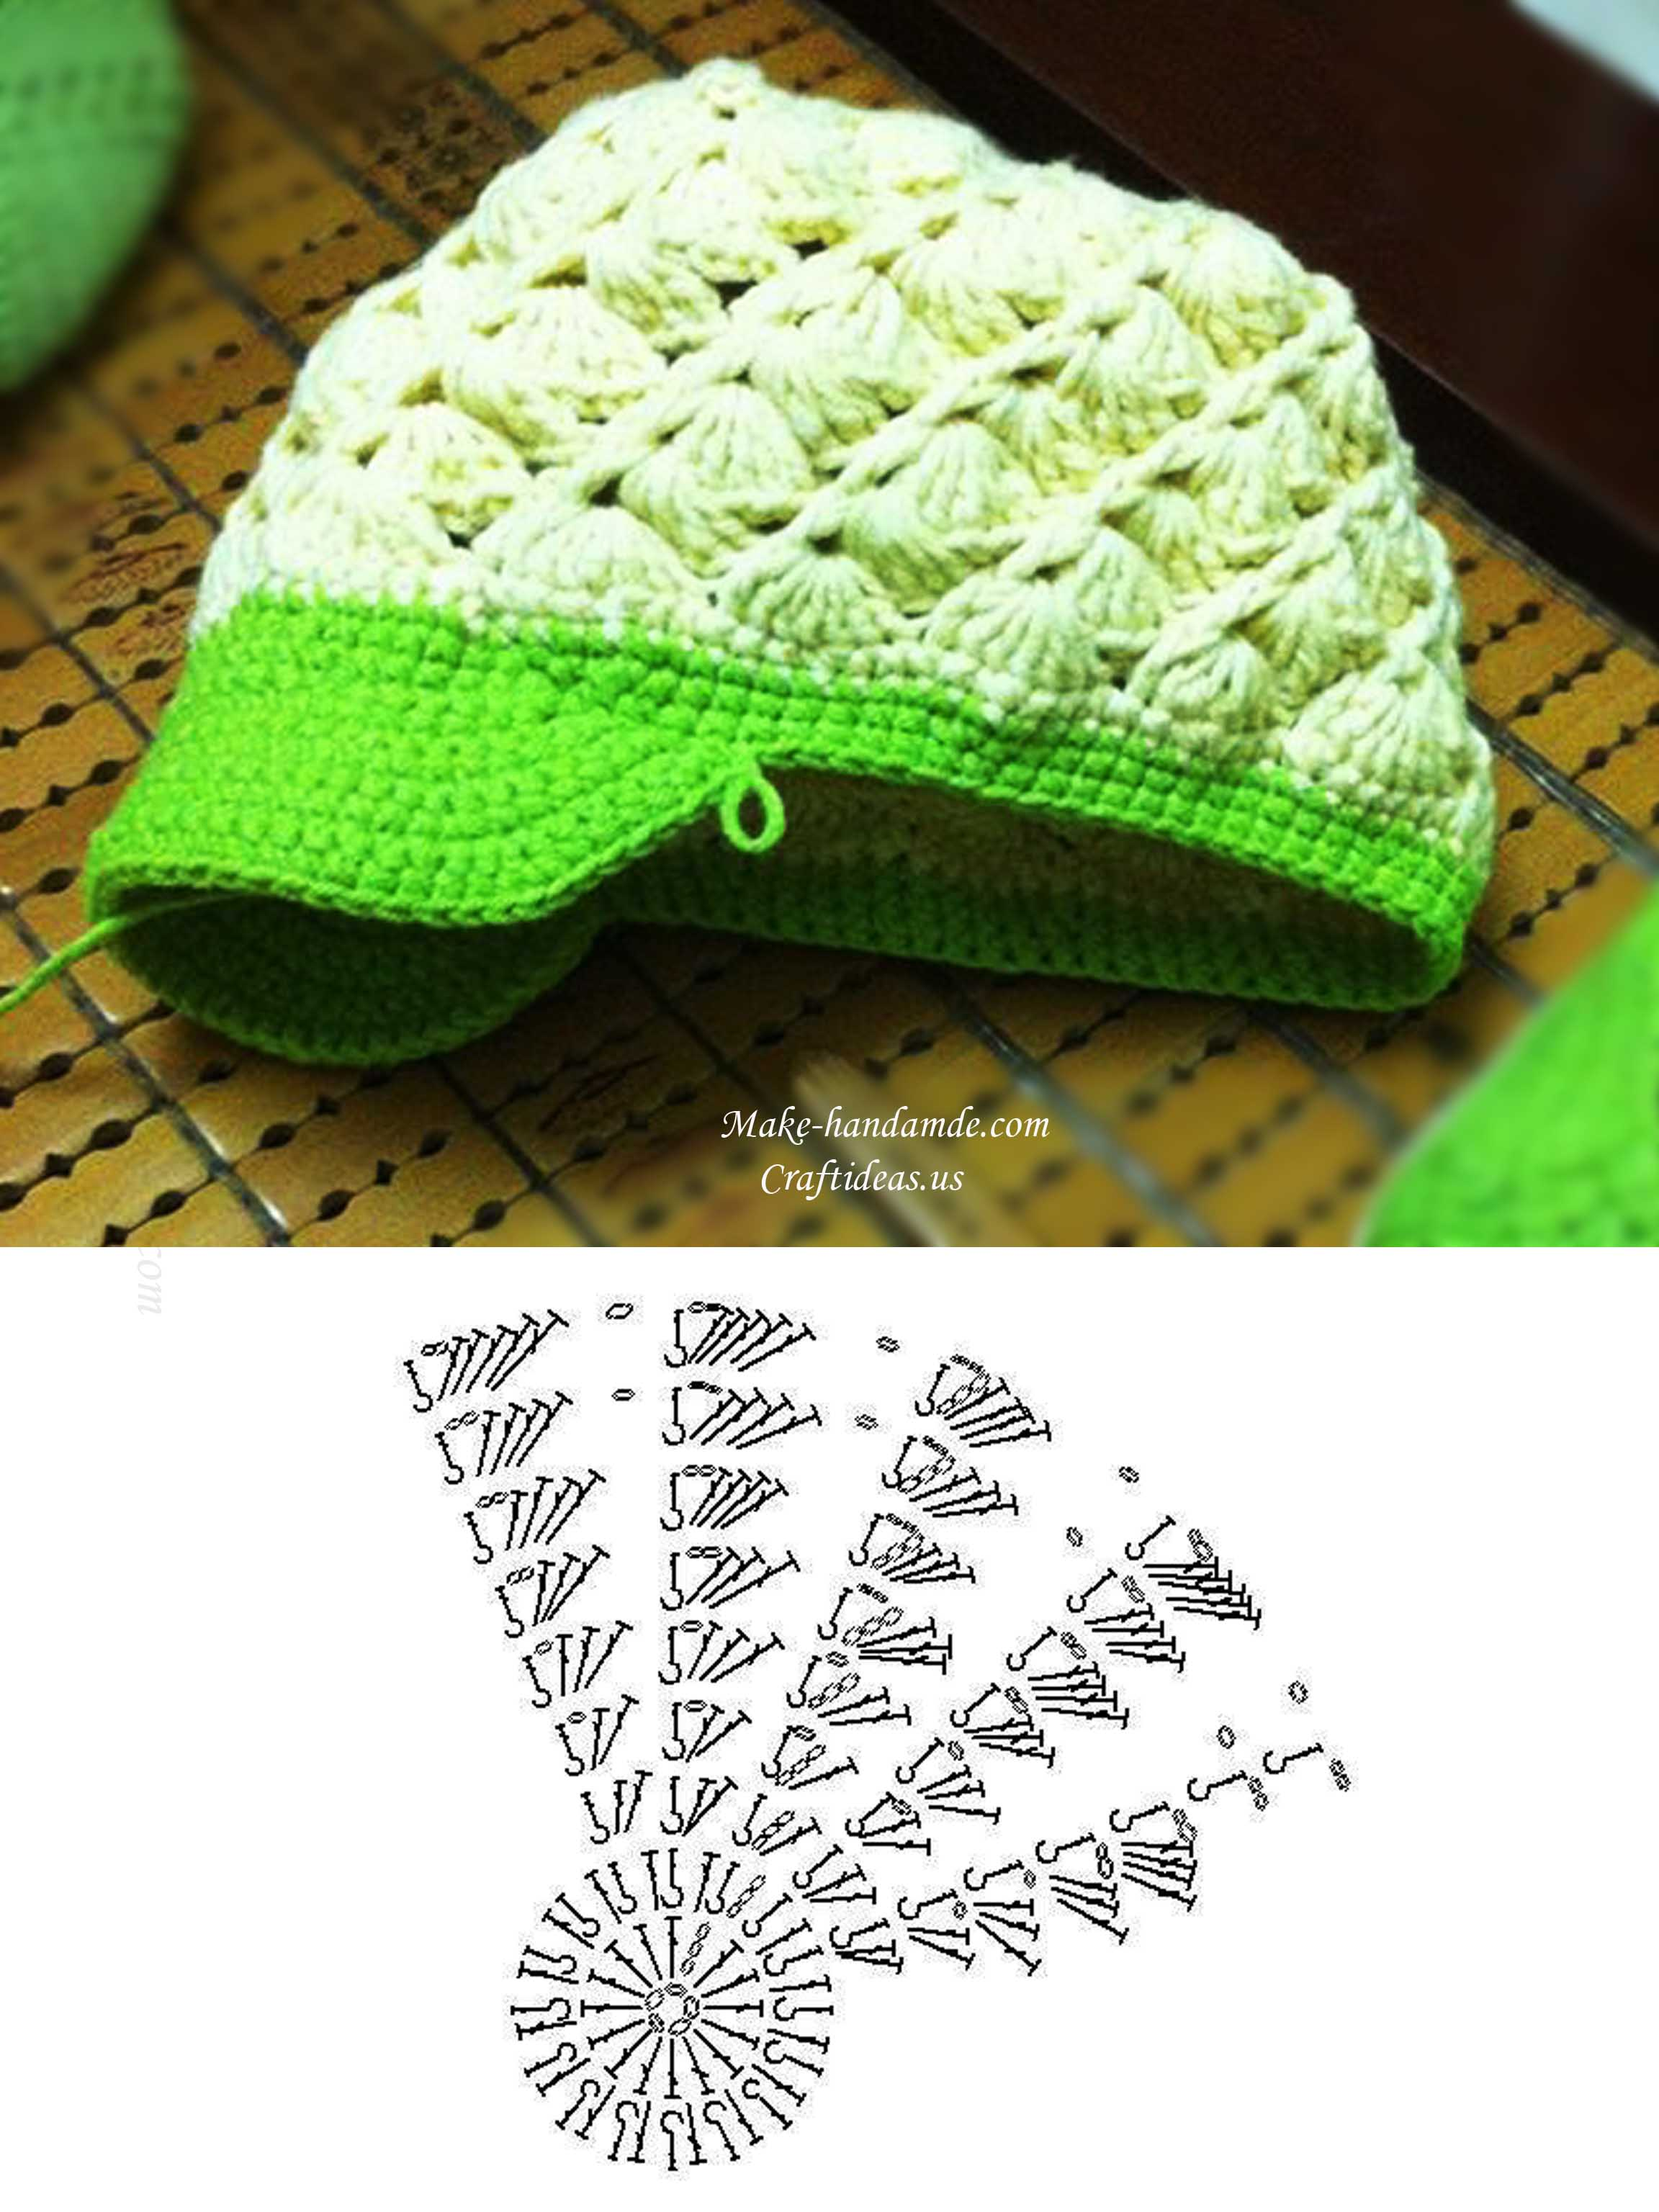 Crochet cute baby brim and hat craft ideas crochet baby hat and brim chart ccuart Image collections